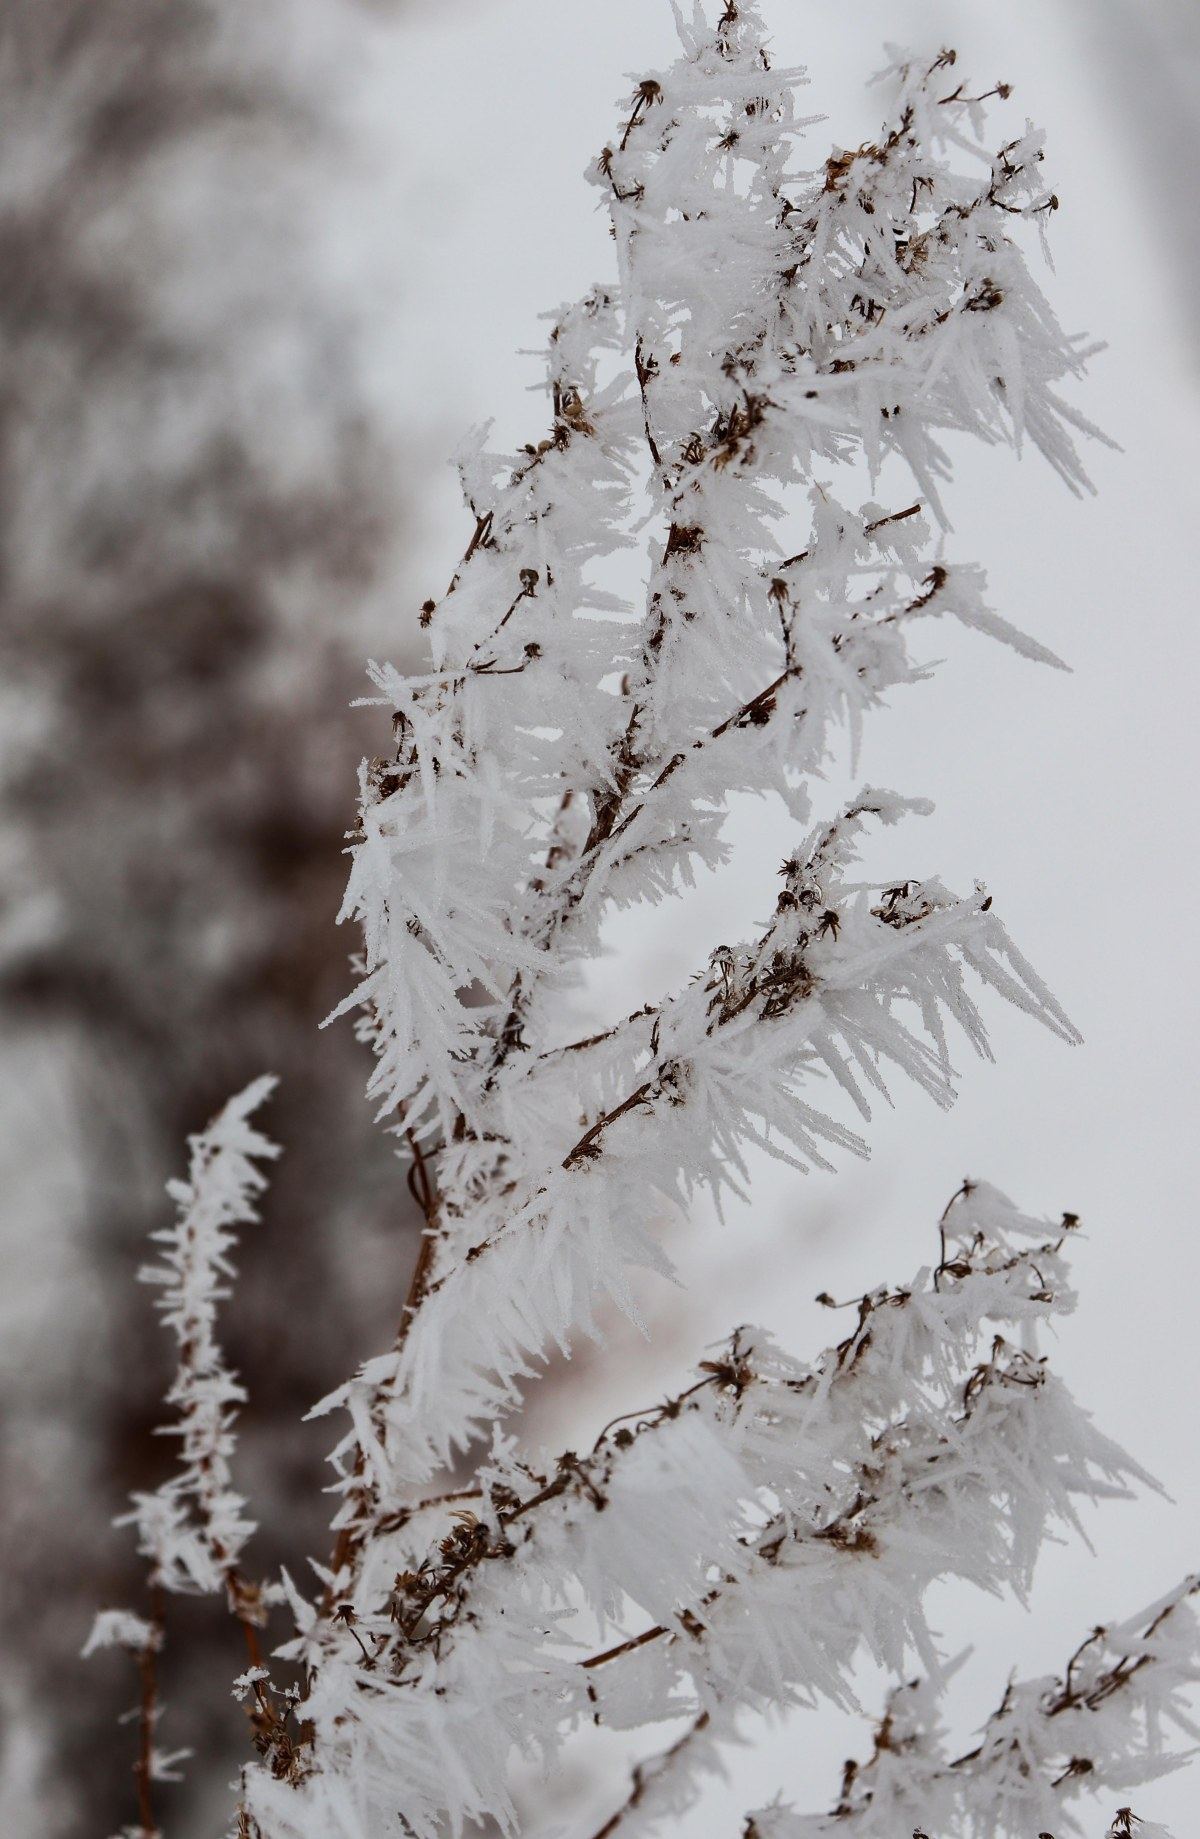 Shards of Frozen Fog Coating A Weed